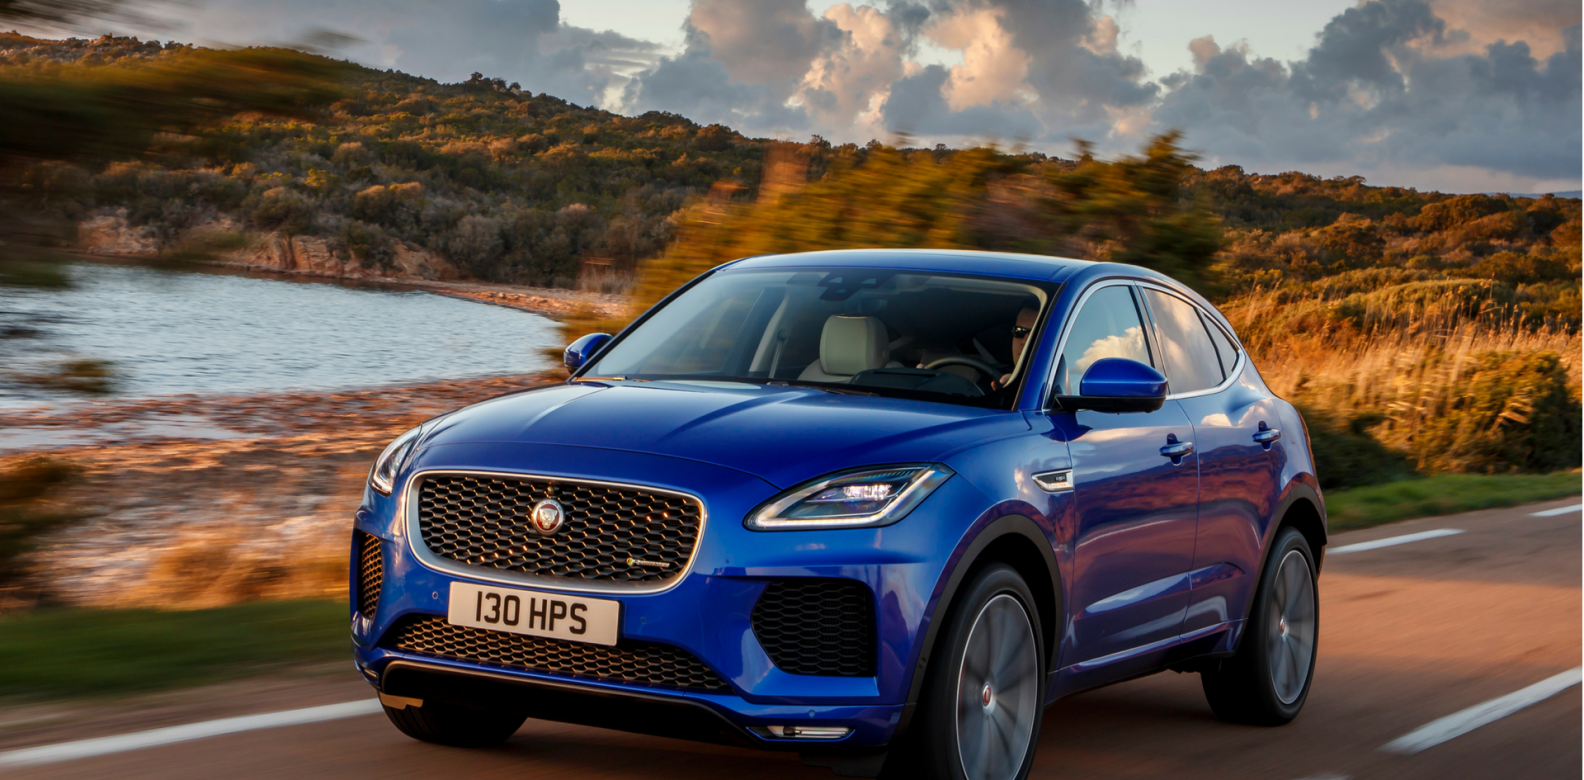 In Pictures: The New Jaguar E-Pace | Hong Kong Tatler